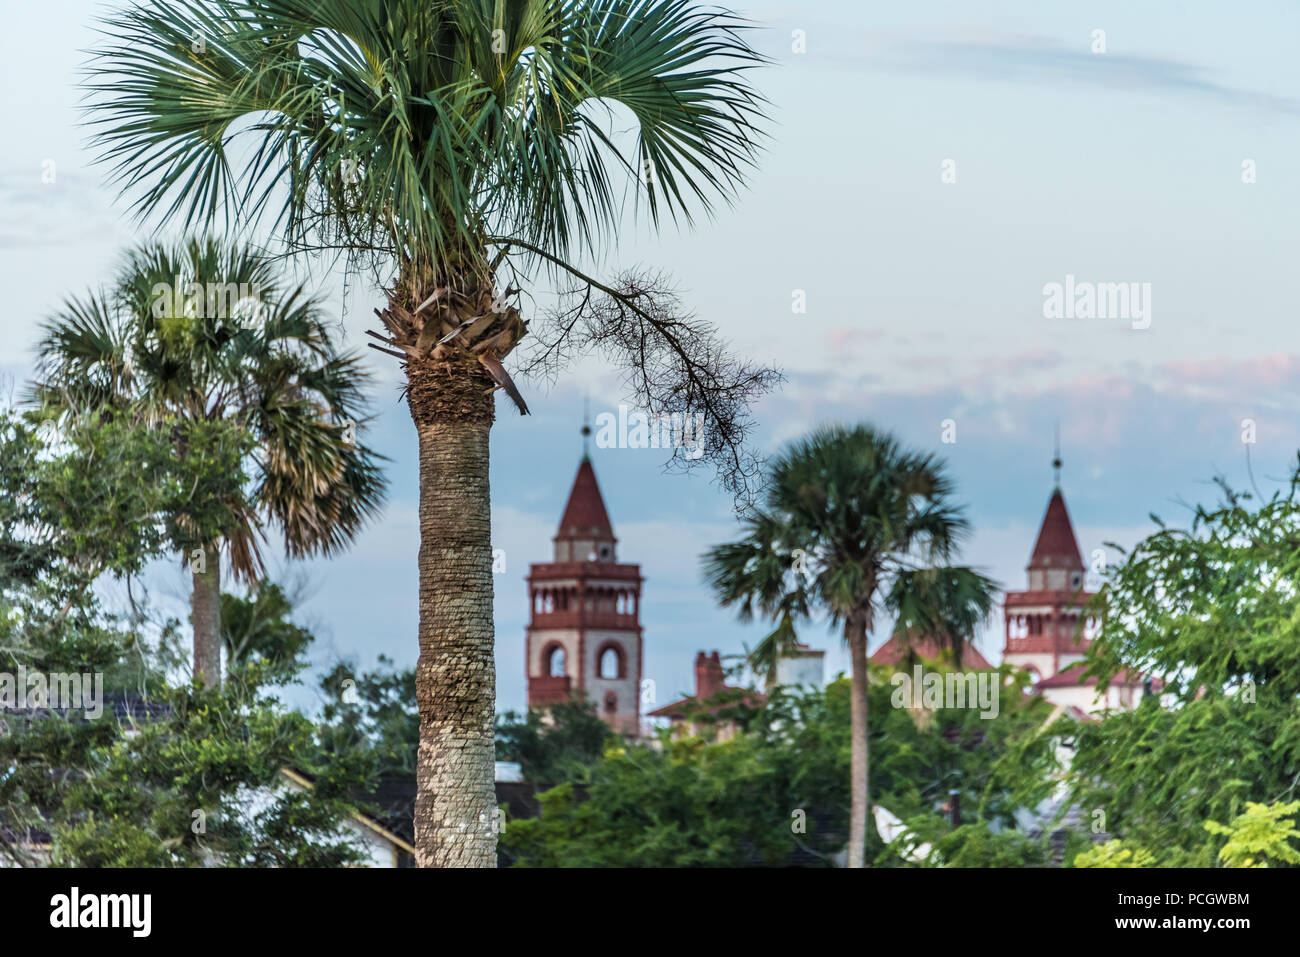 View of St. Augustine, Florida's Flagler College from Castillo de San Marcos National Monument. (USA) - Stock Image